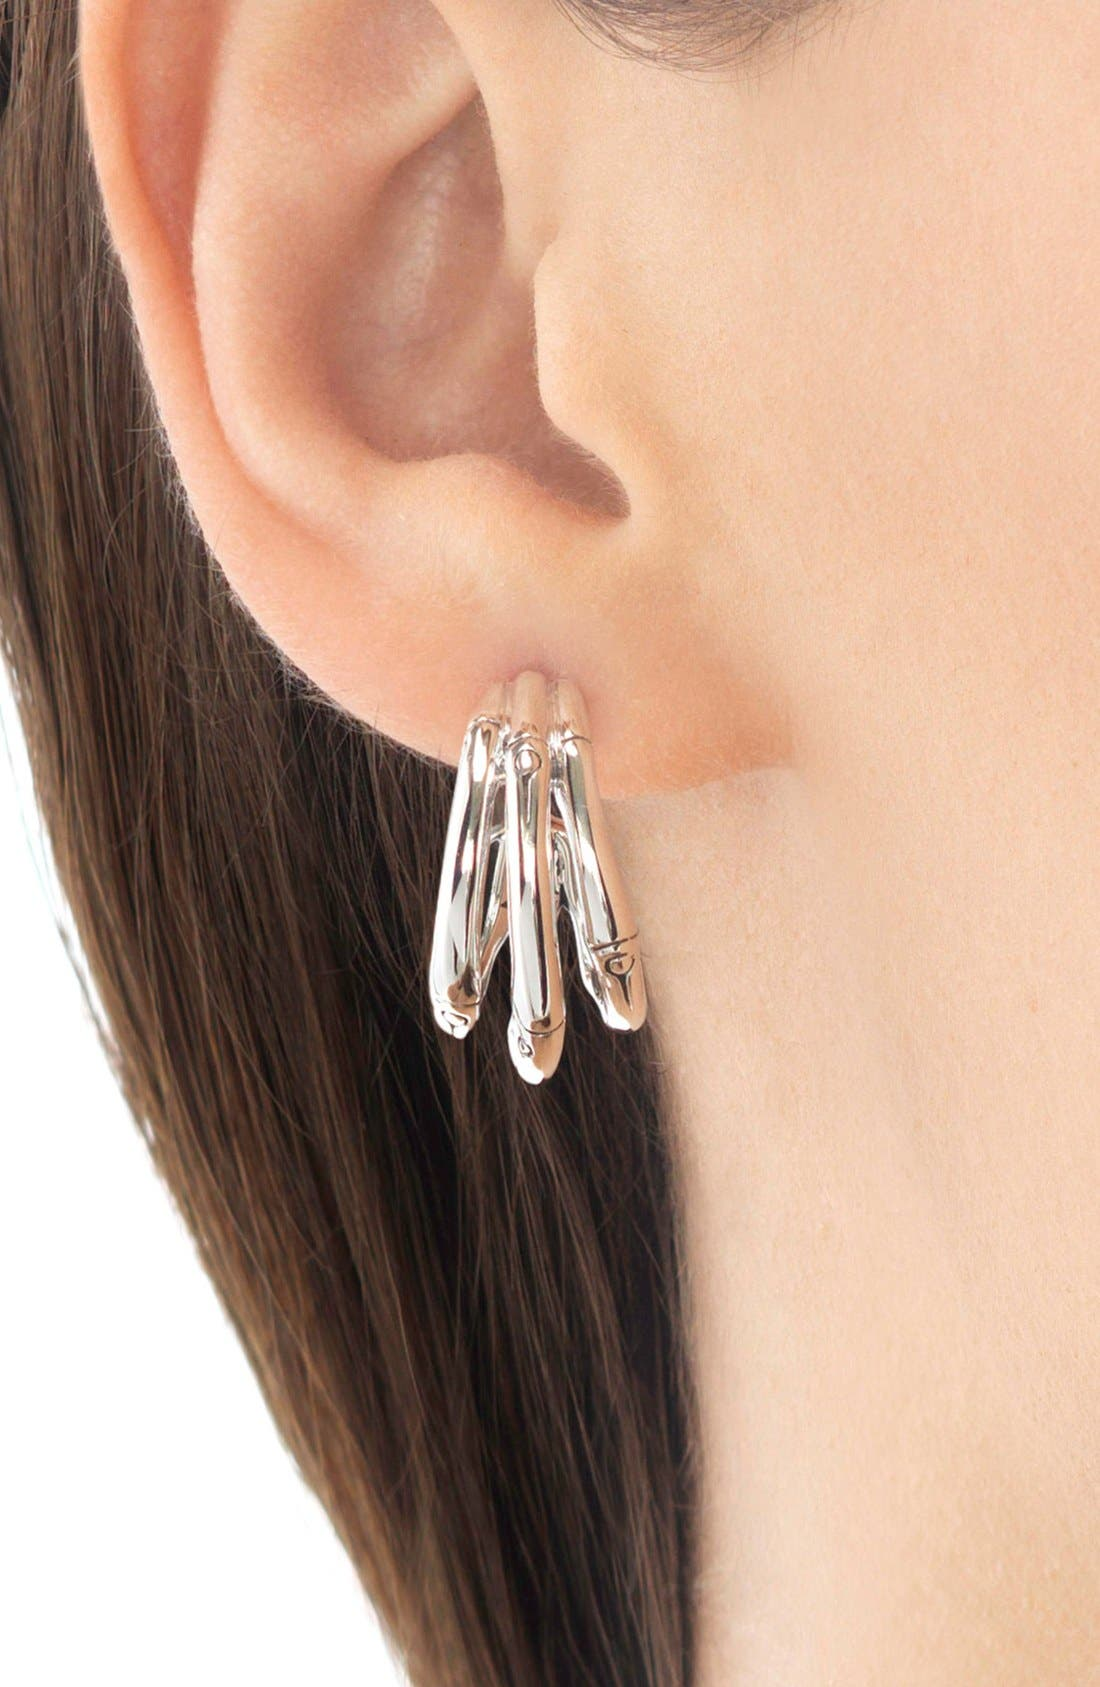 Bamboo Small Hoop Earrings,                             Alternate thumbnail 2, color,                             Silver